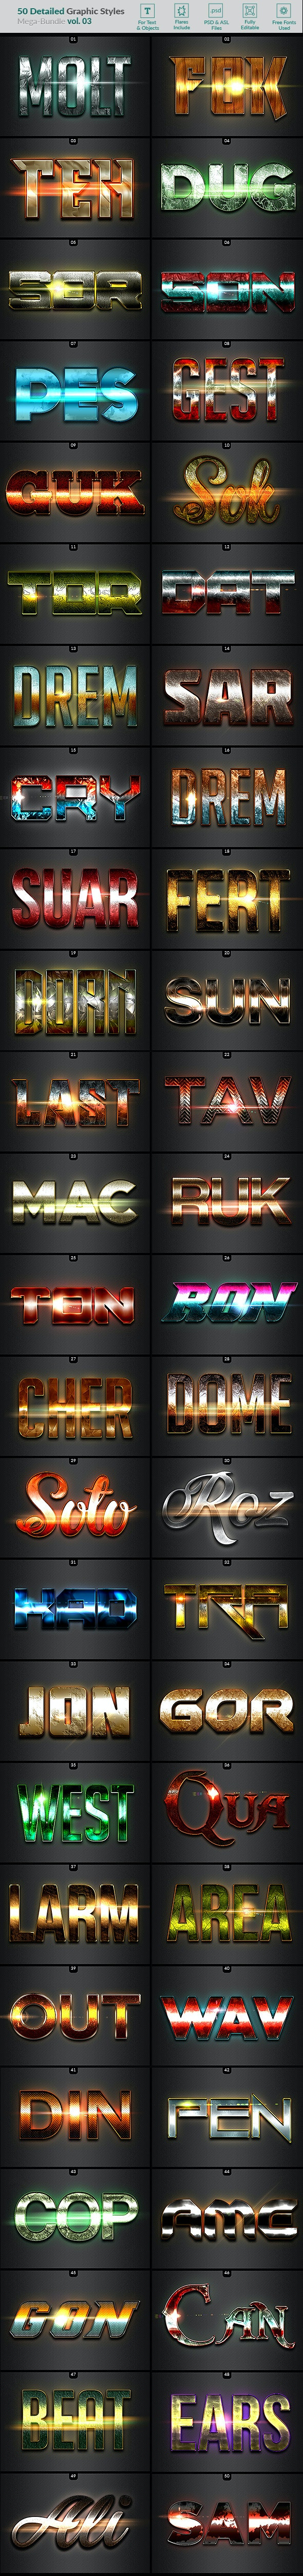 50 Text Effects - Bundle Vol. 03 - Text Effects Styles